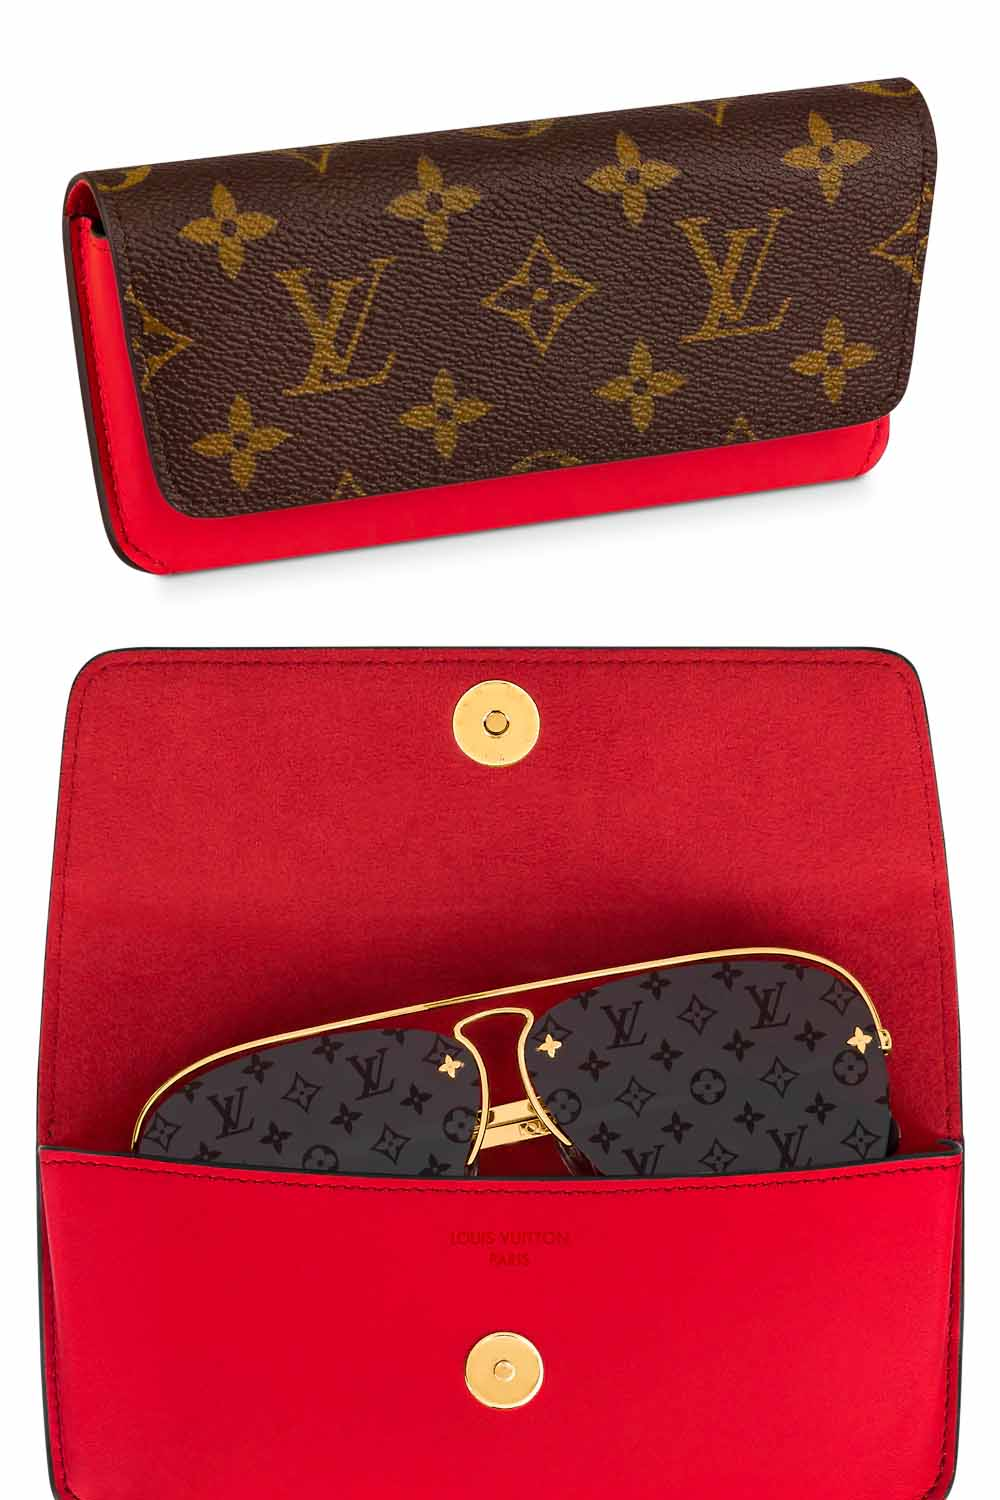 The-best-luxury-gifts-for-her-women-Louis-Vuitton-woody-monogram-sunglasses-case